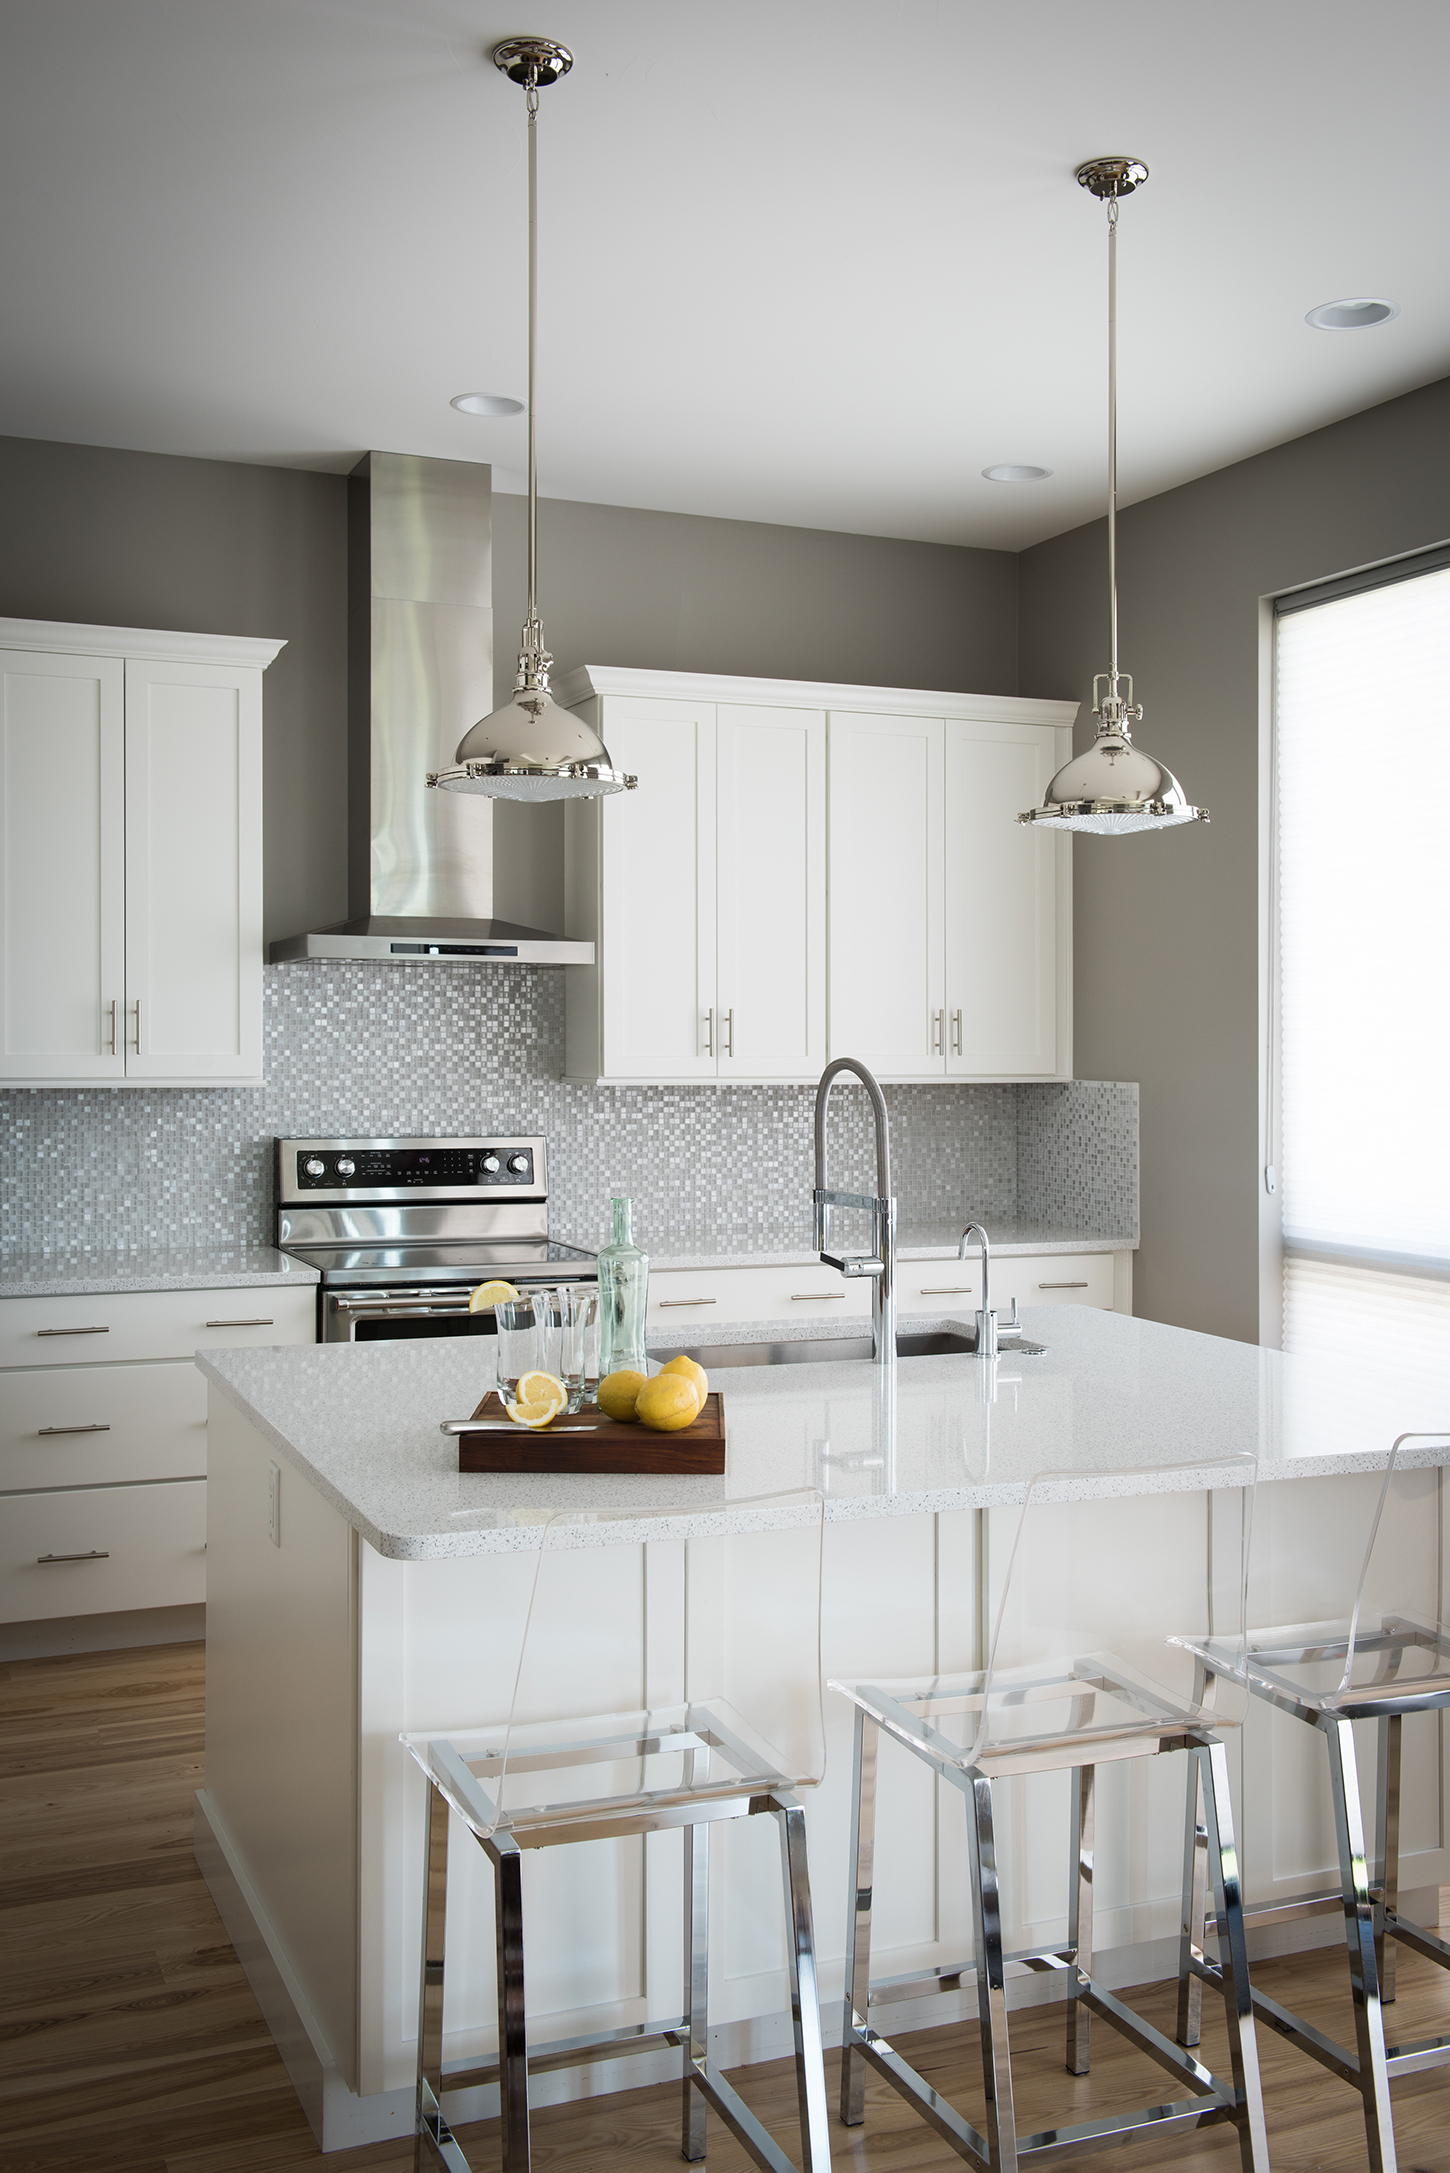 The bright & airy feel is what draws me to this stylish kitchen. General Contractor - Trademark Construction